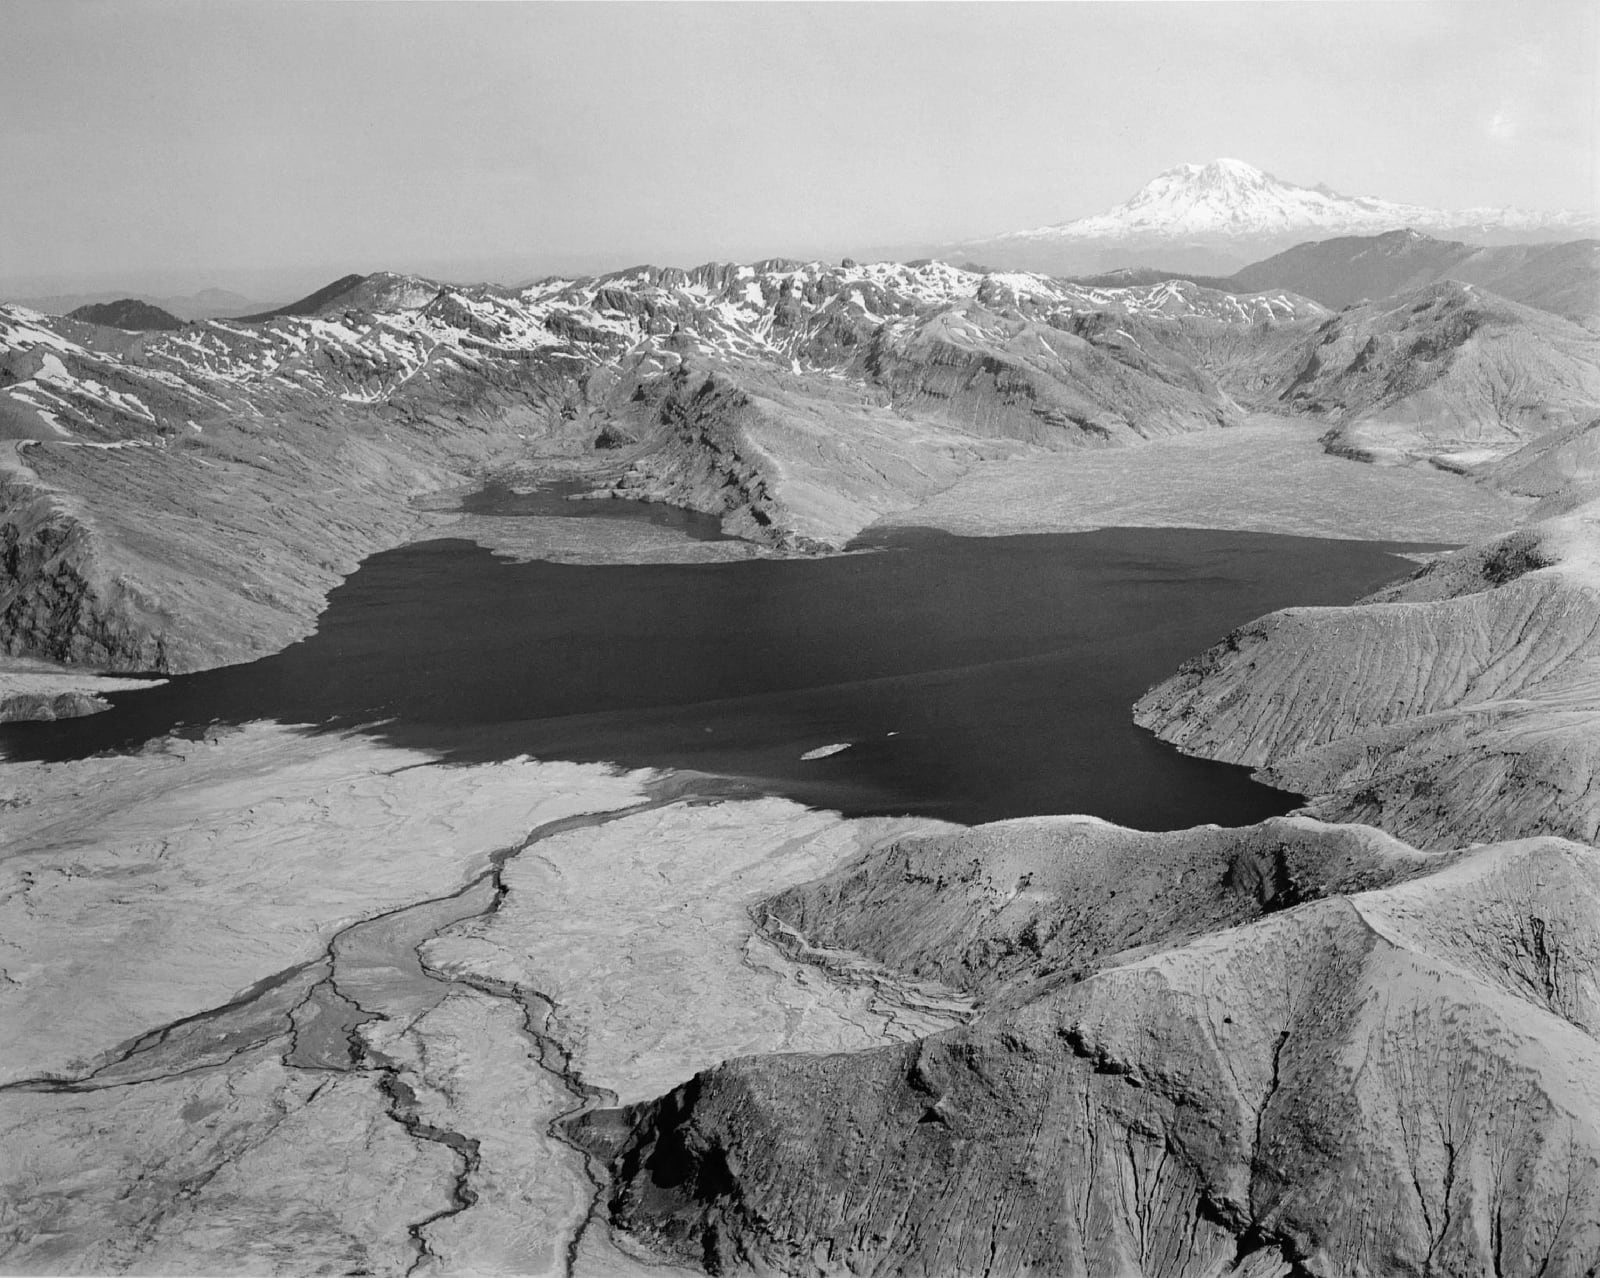 Frank Gohlke - Aerial view: Spirit Lake from the South, Mt. Rainier on horizon, 50 miles away (North end of lake filled with logs from eruption), 1982